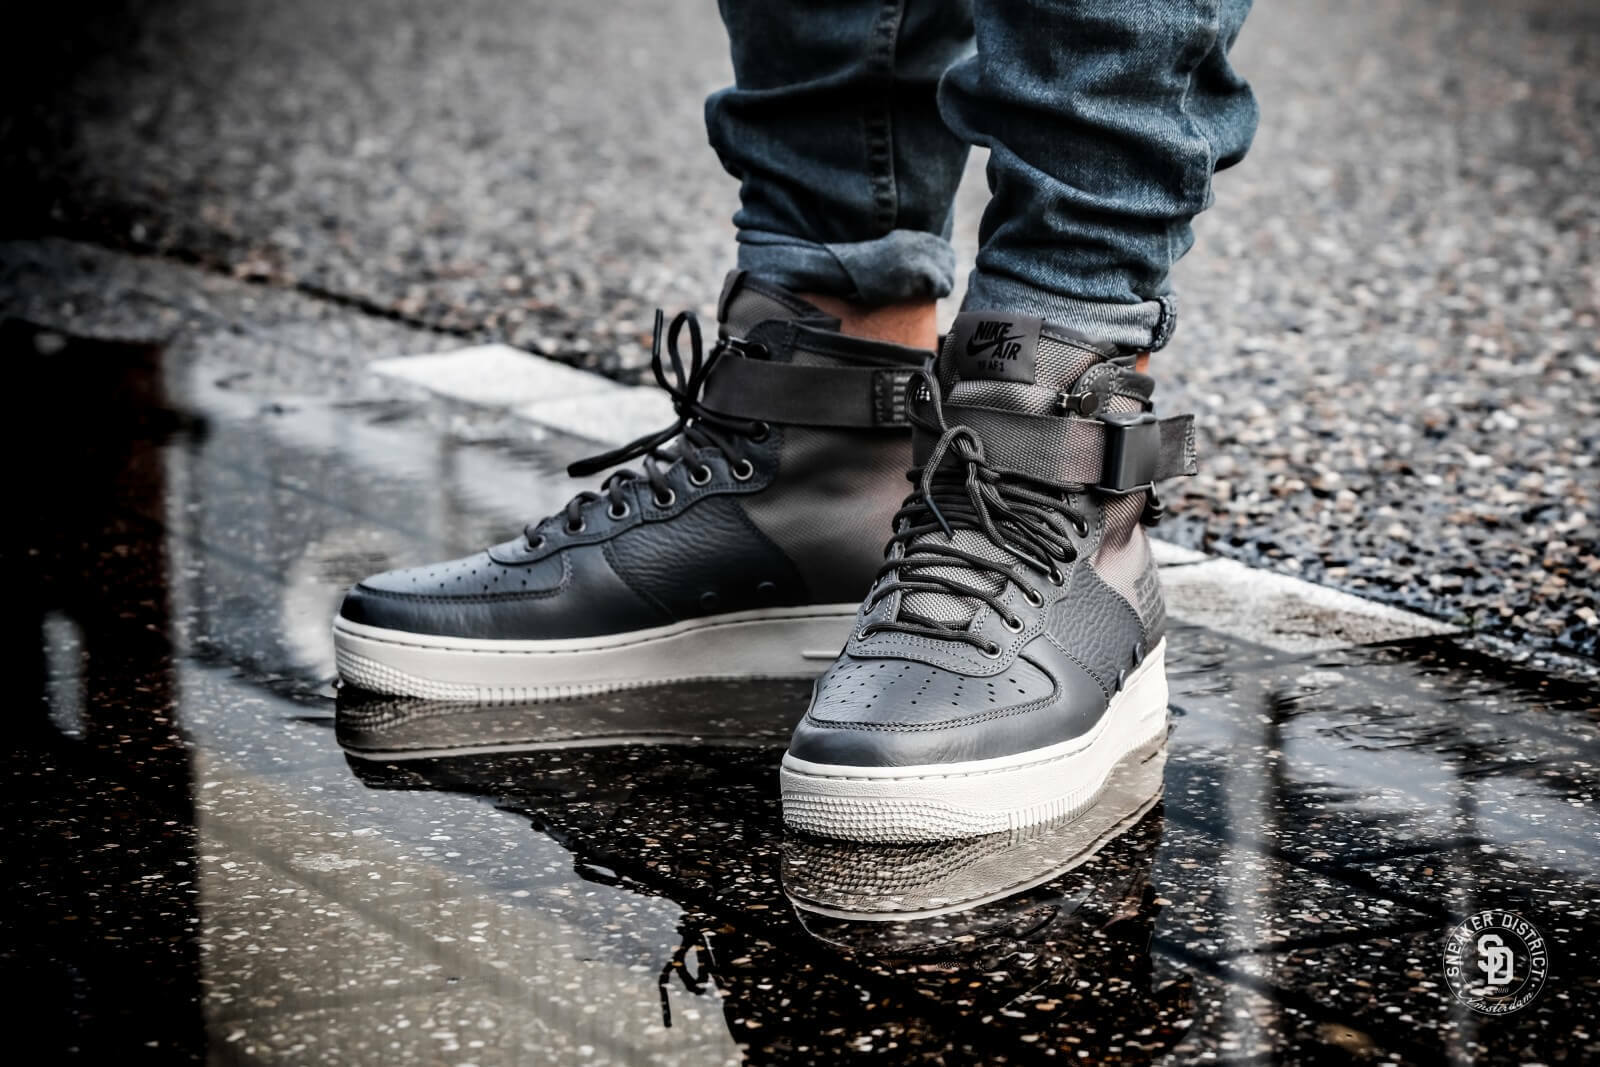 Nike Special Field SF Air Force 1 Mid Dark Grey Mens Trainers Boots UK 13